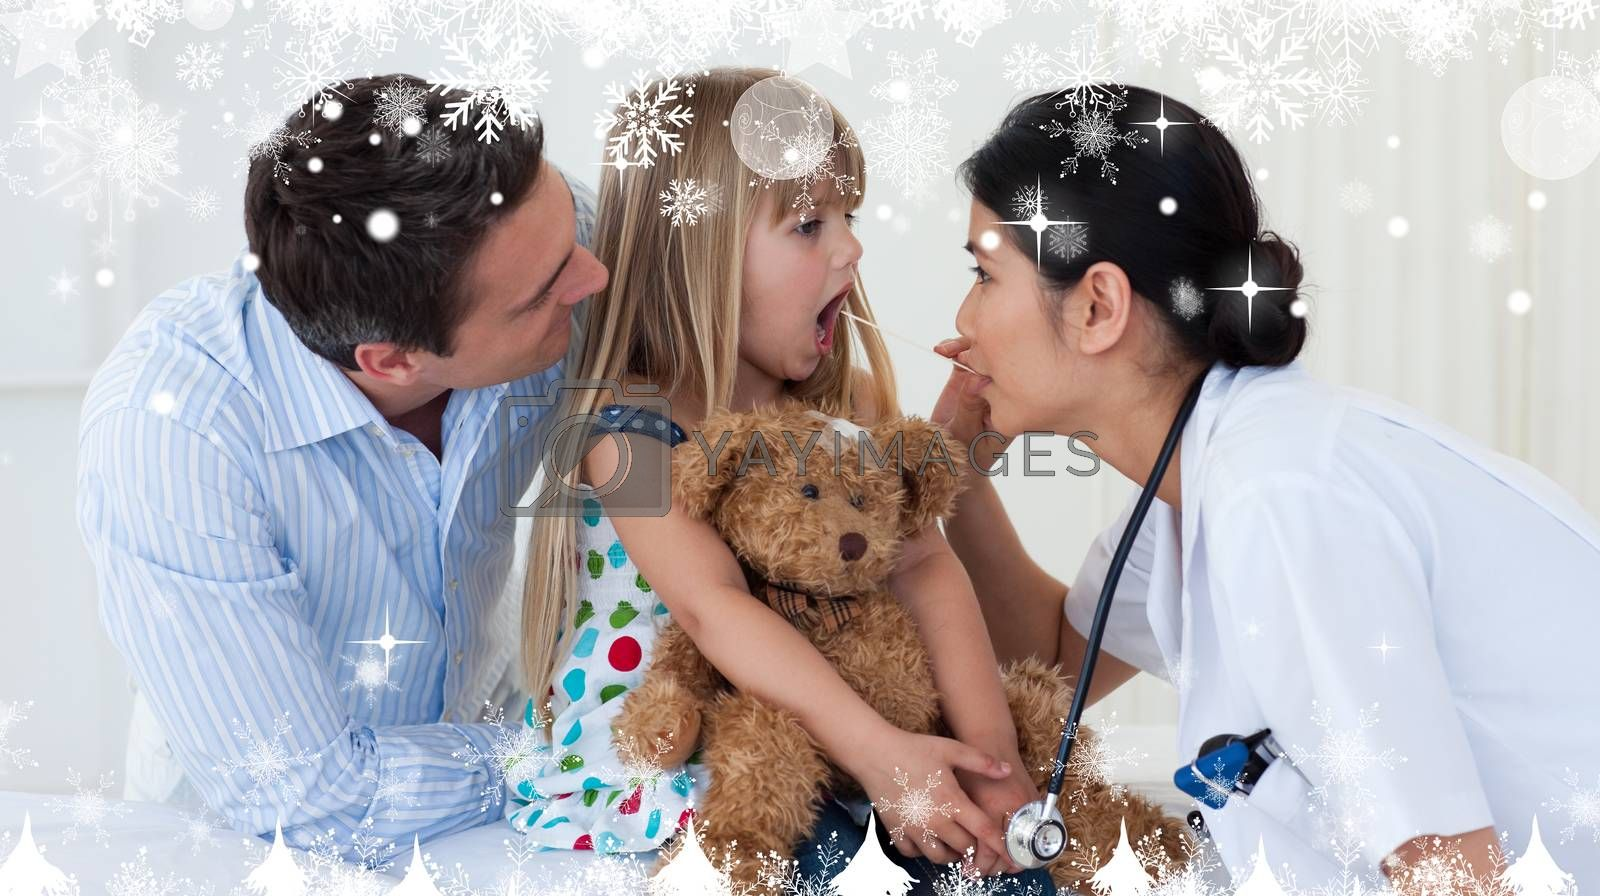 Composite image of a Doctor examining childs throat against snow falling